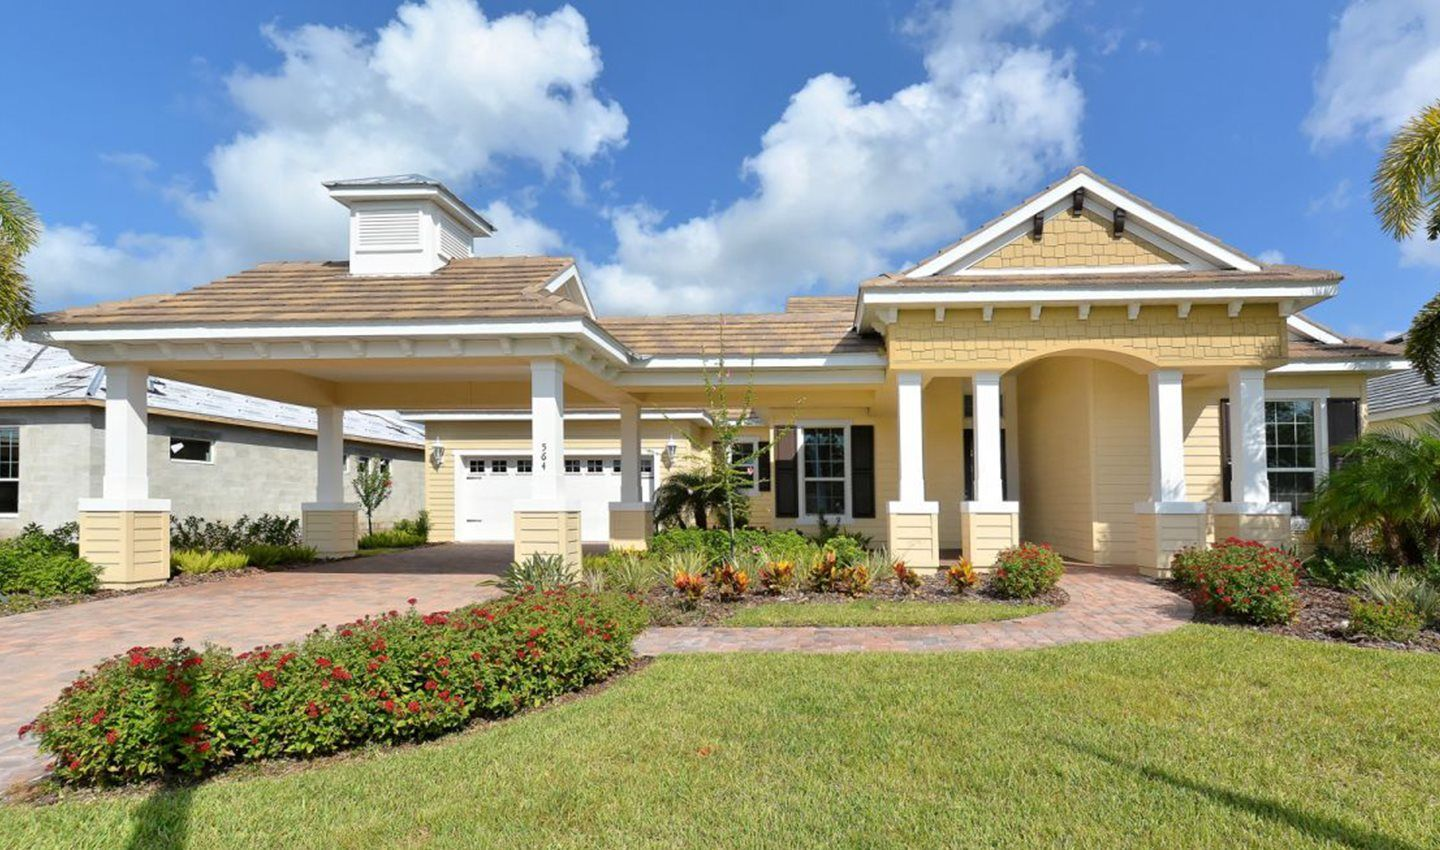 Single Family for Active at Mirabay - Key Largo 713 Manns Harbor Drive Apollo Beach, Florida 33572 United States